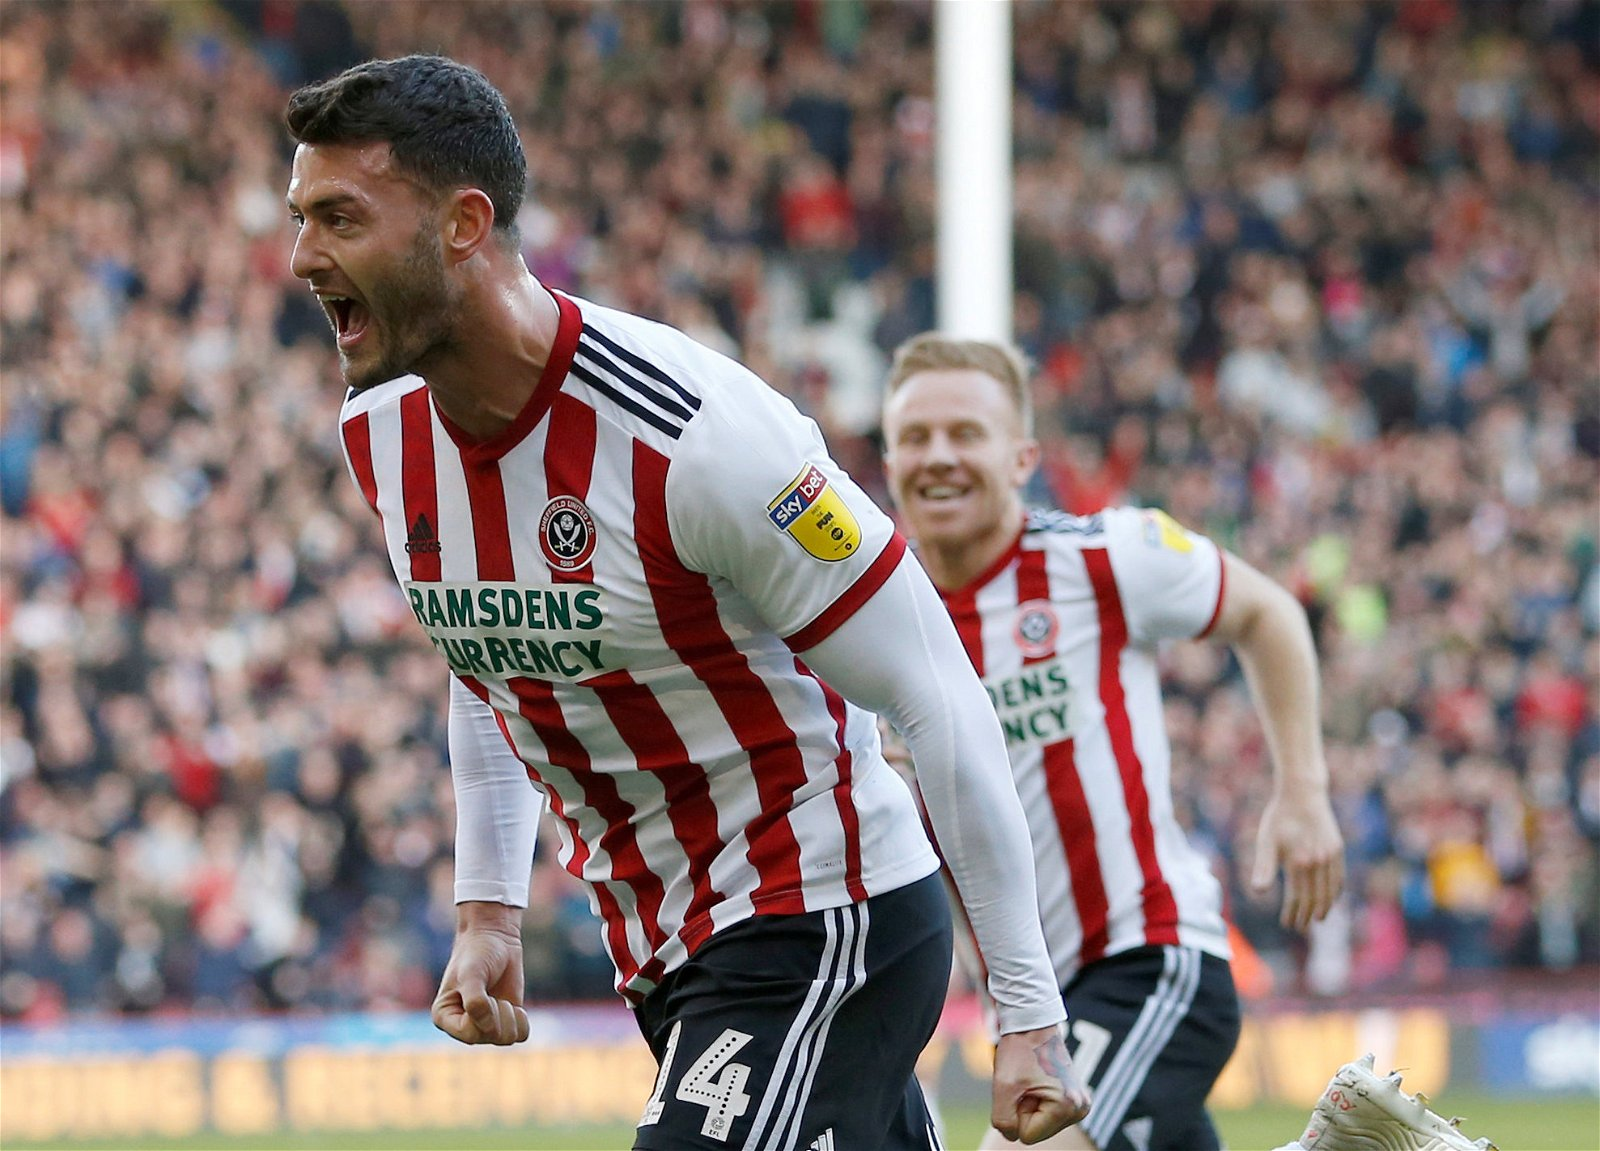 Gary Madine Sheffield United vs Reading - Genius gamble pays off, 24 y/o comes of age: What we learned about Sheffield United on Wednesday